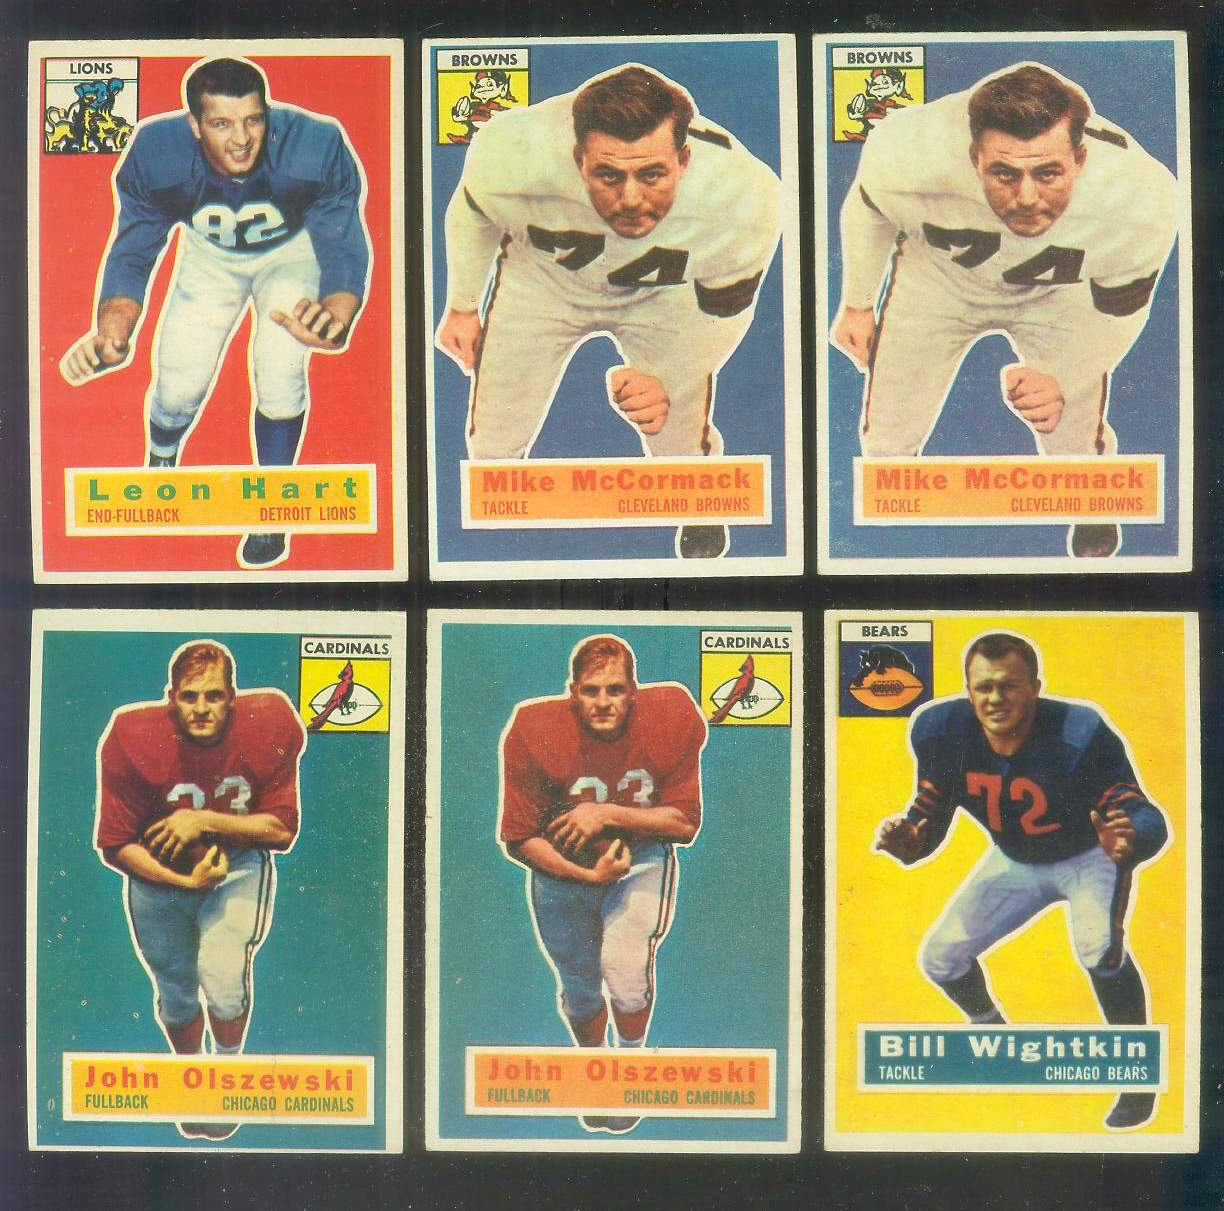 1956 Topps FB #106 John Olszewski SHORT PRINT (Chicago Cardinals) Football cards value